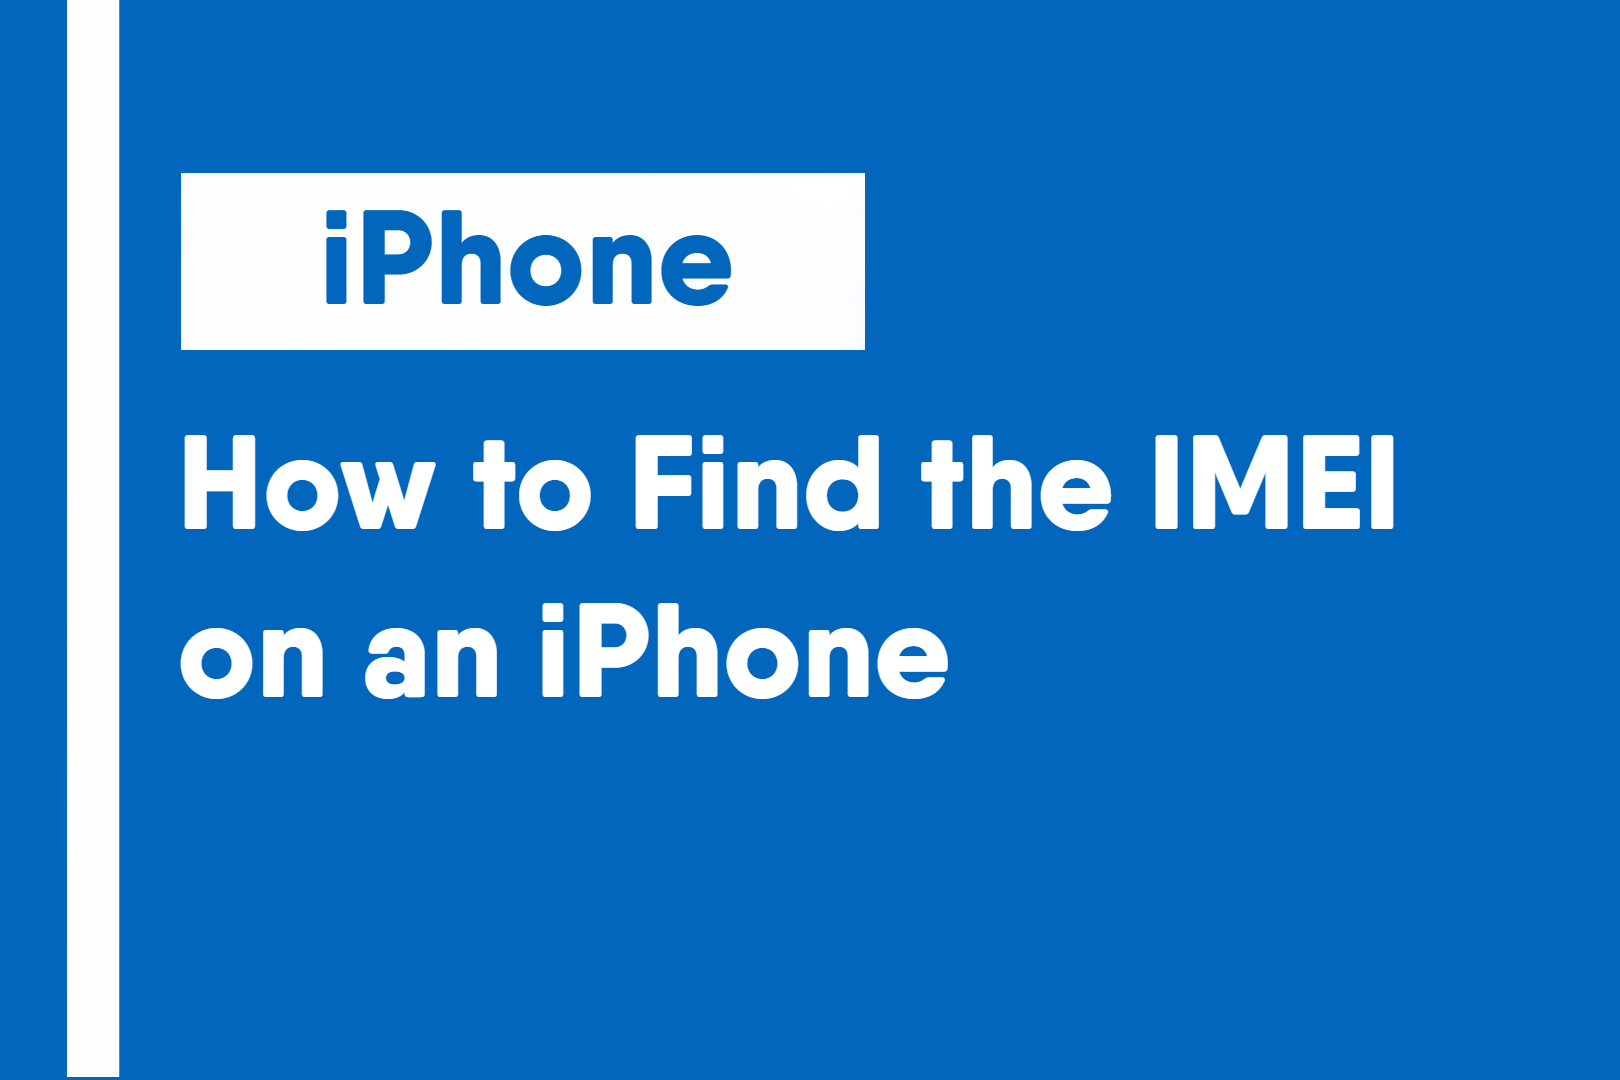 How to Find the IMEI on an iPhone